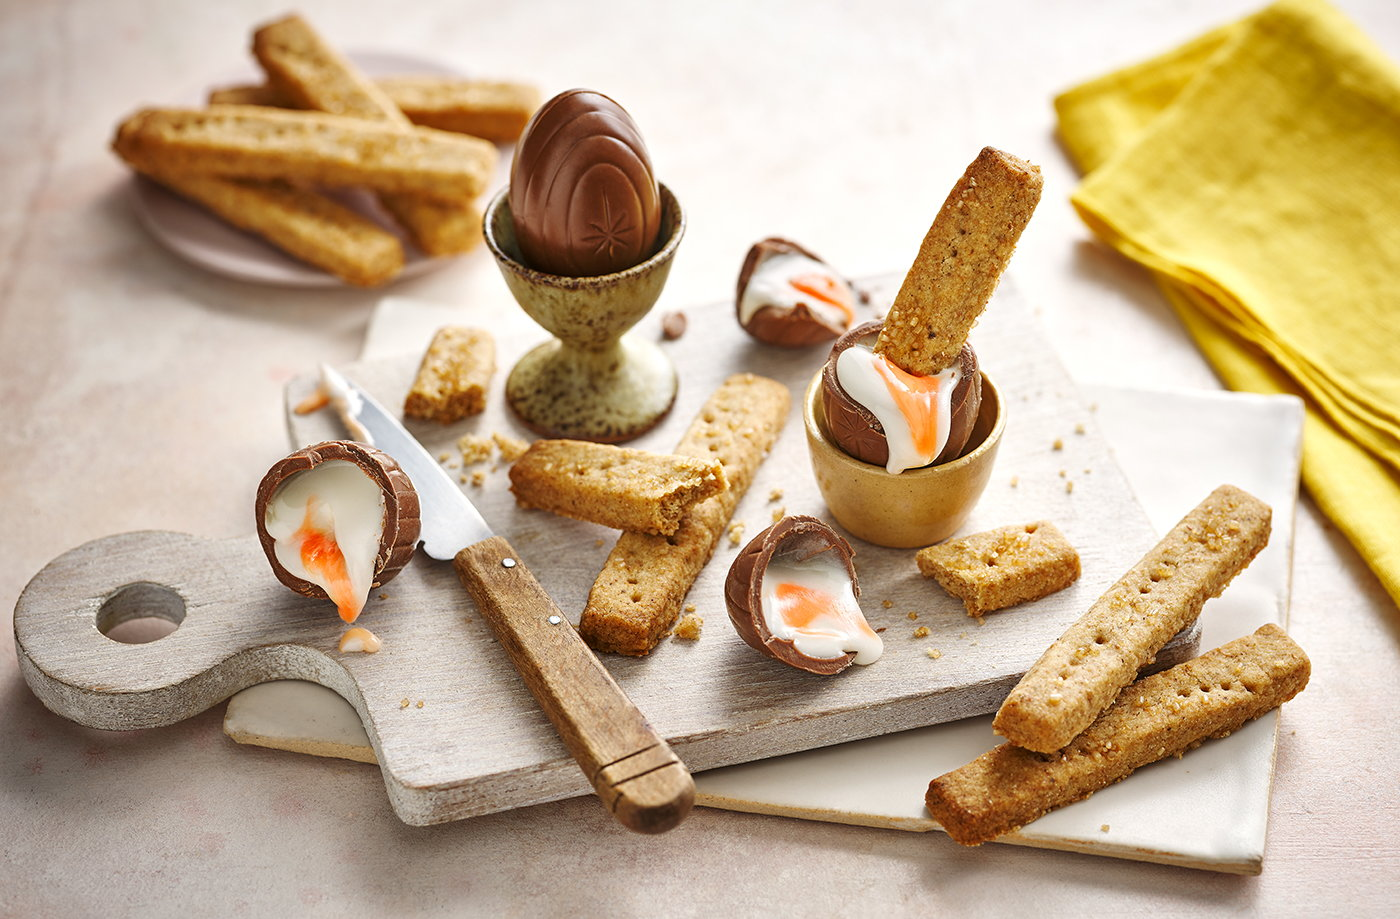 Chocolate 'dippy eggs' and brown butter shortbread soldiers recipe